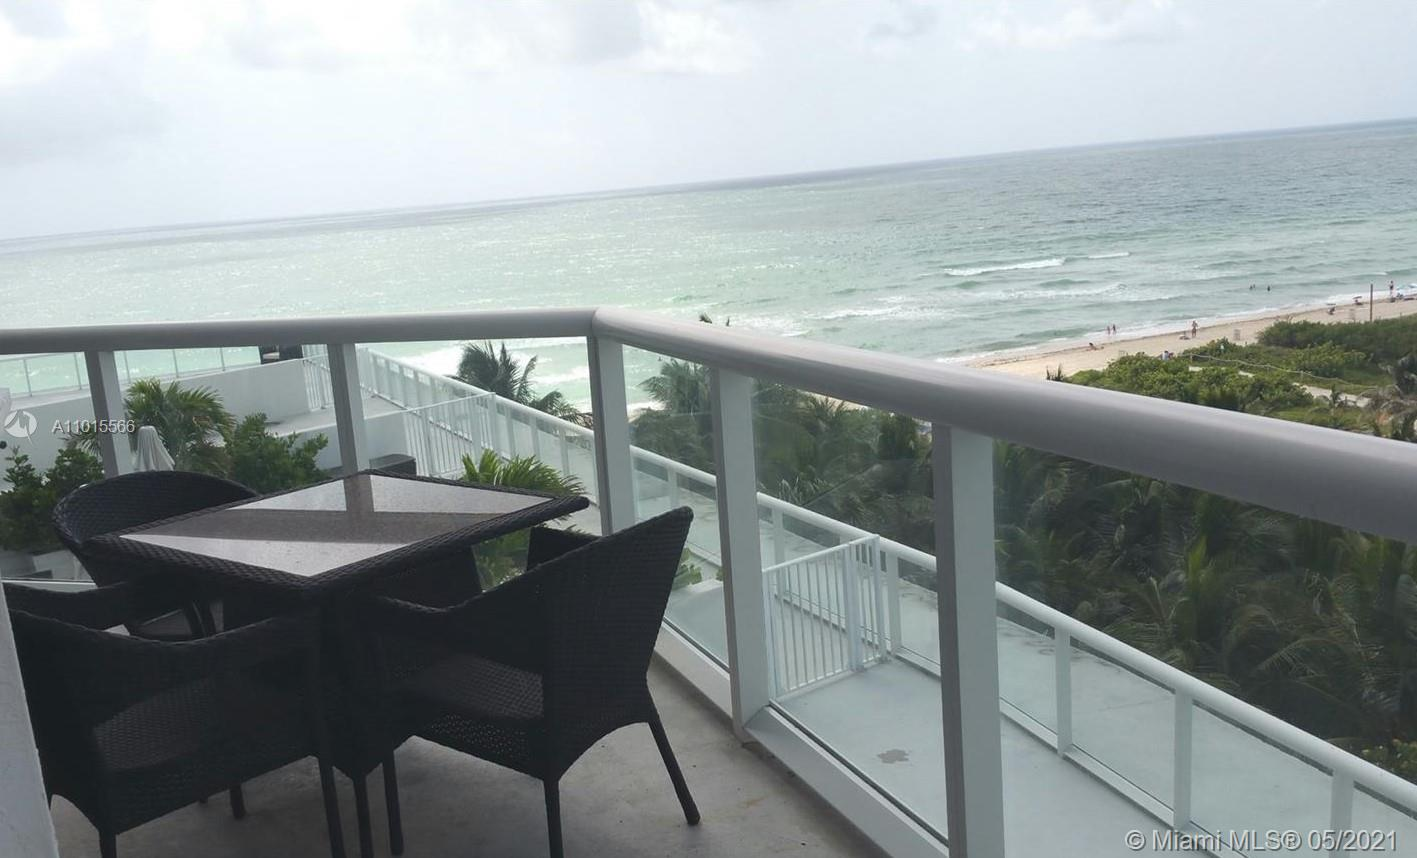 BEL AIRE ON THE OCEAN! 1/1.5 UNIT WITH SPECTACULAR VIEWS, FLOOR TO CEILING WINDOWS, AND BEACHFRONT ACCESS!